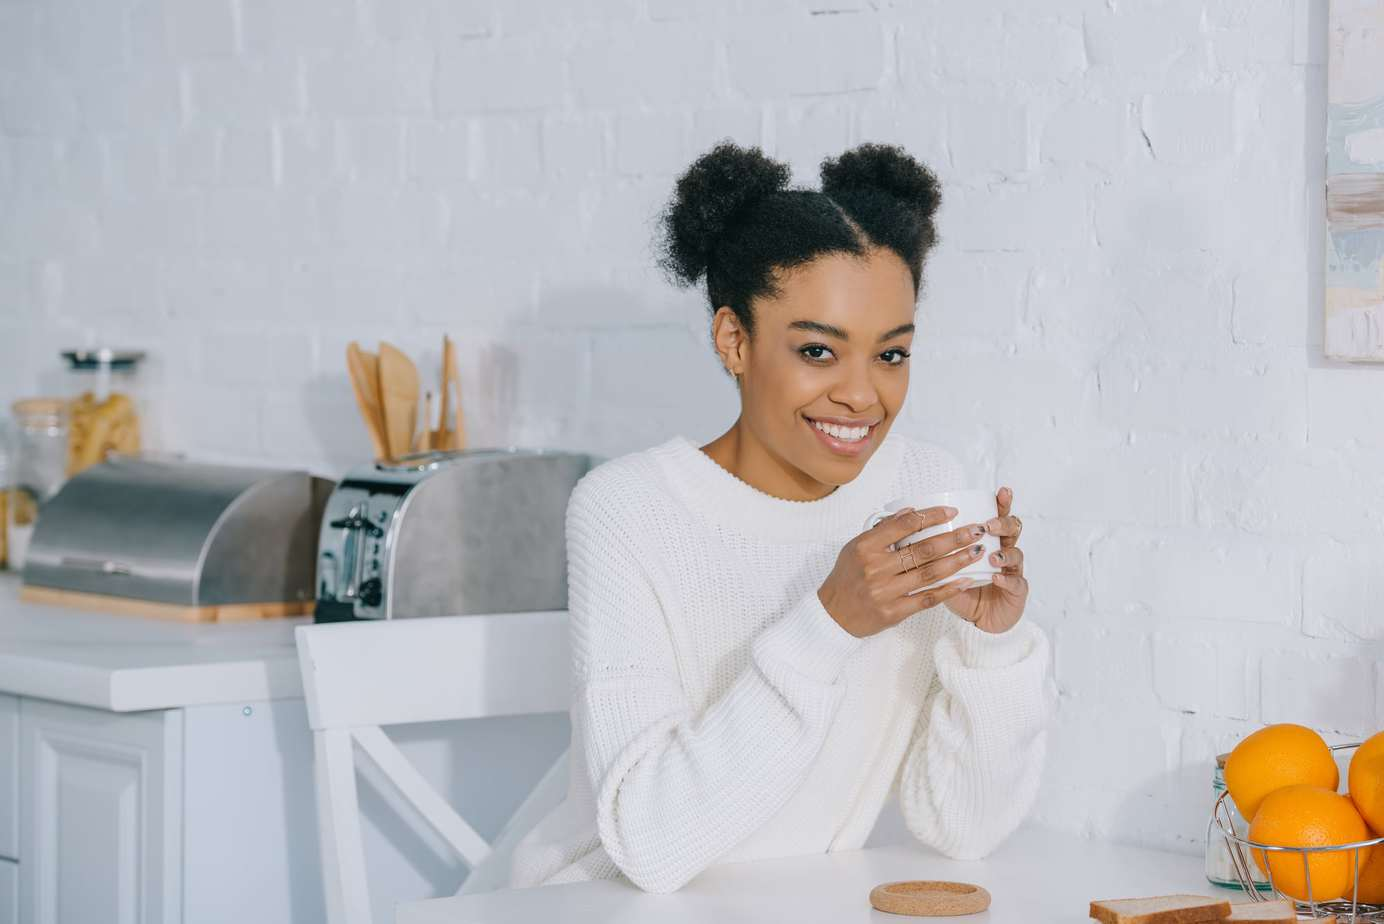 African American lady drinking coffee wearing a white sweater and afro puffs